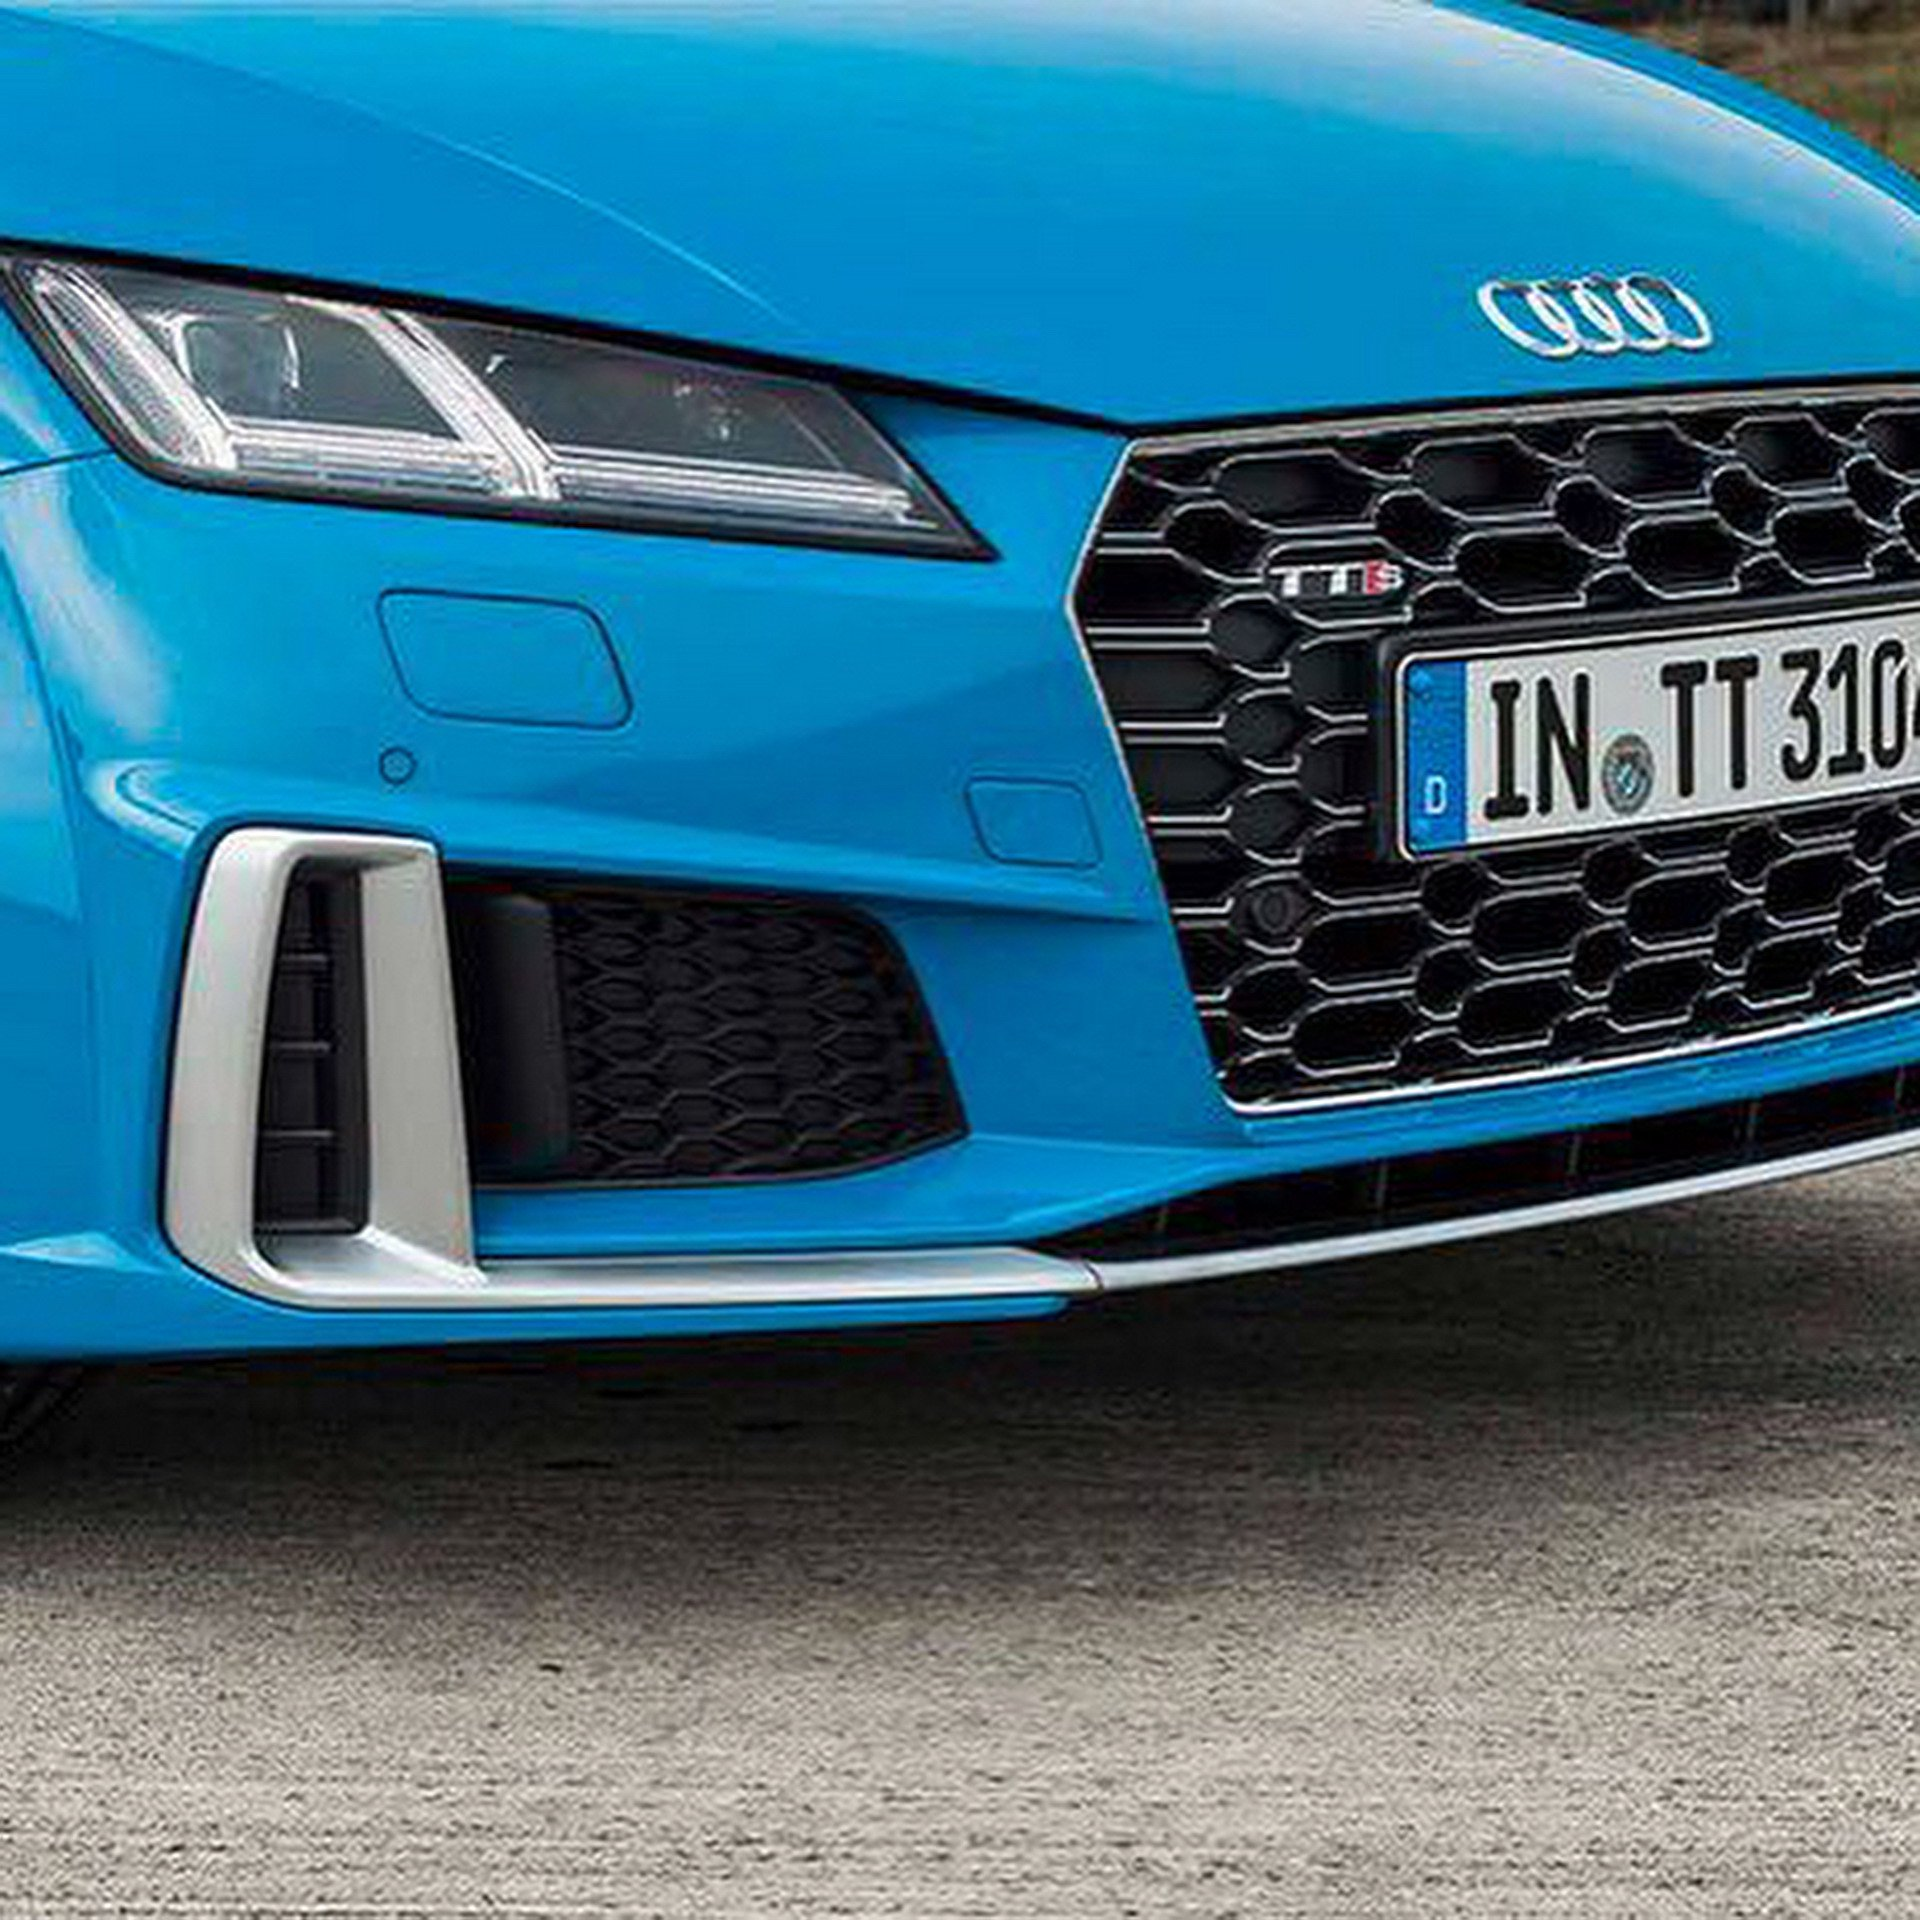 2019 Audi TT Facelift Leaked: TTS Loses 4 HP, TT RS Looks